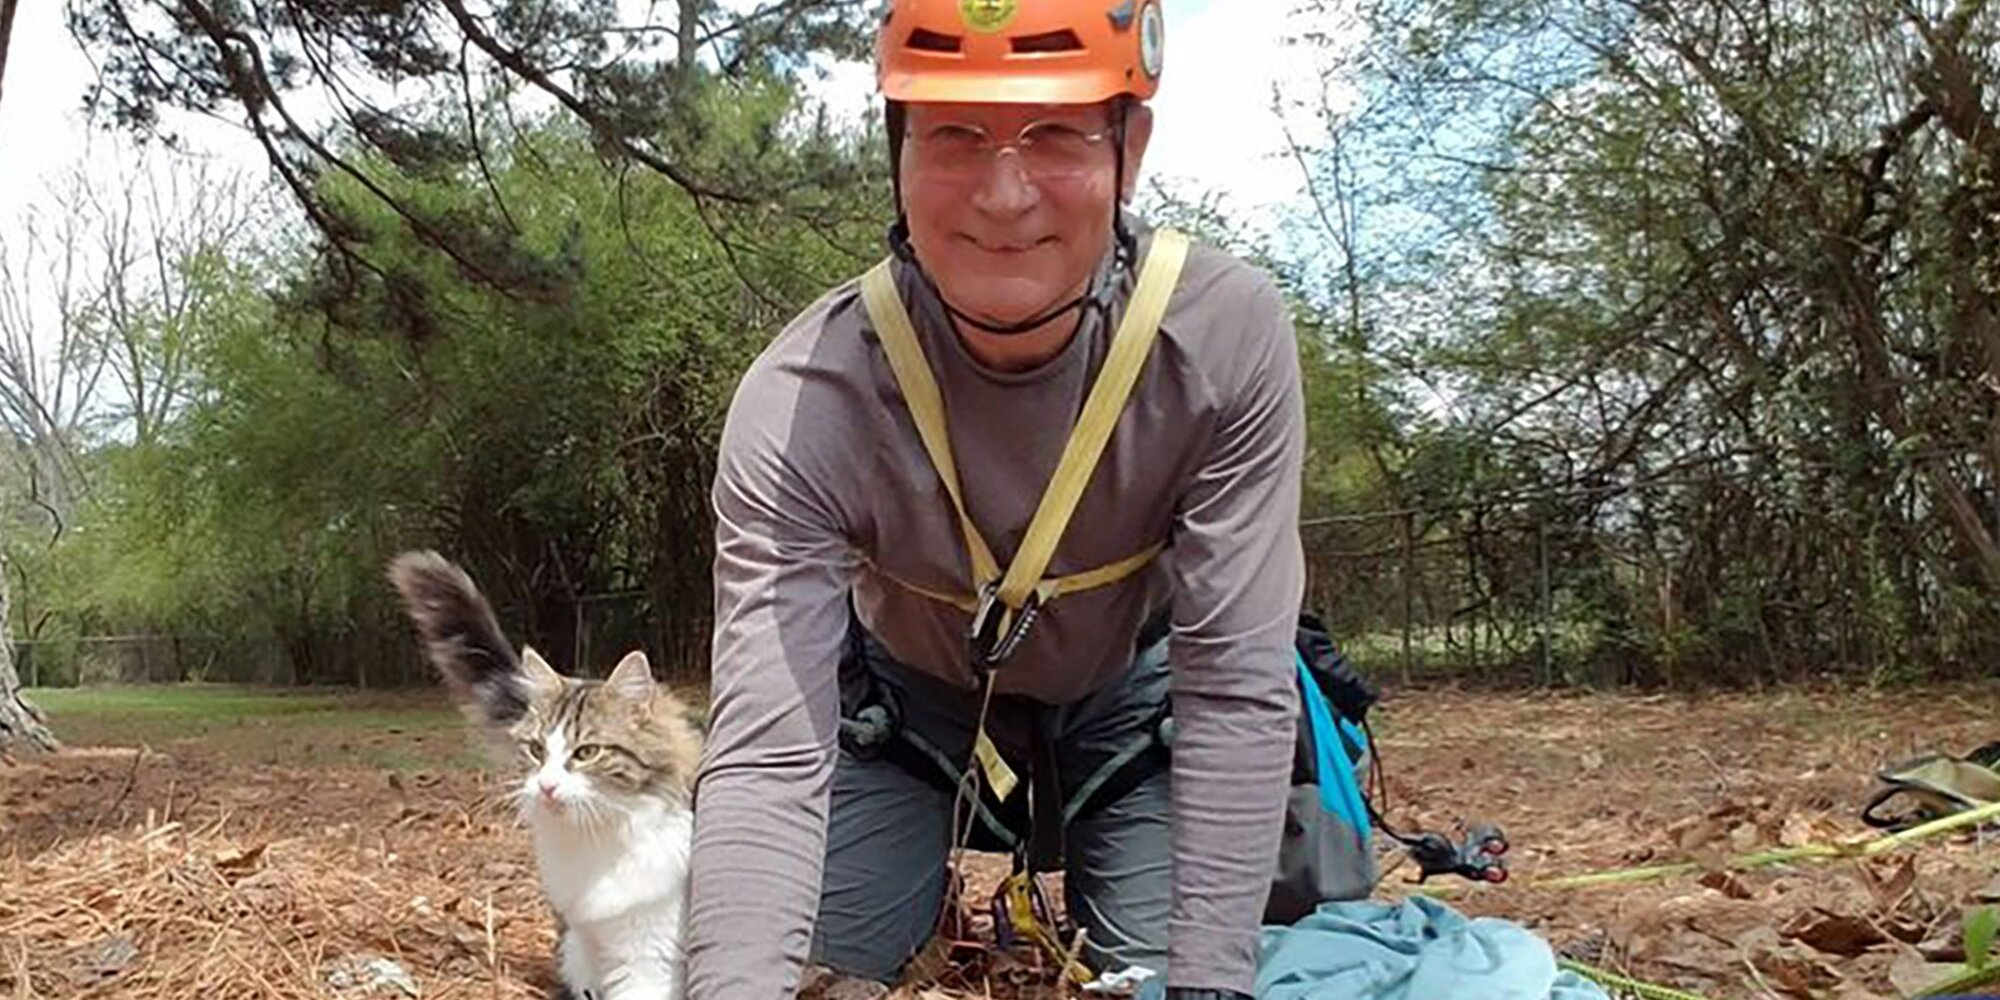 70-Year-Old Man Climbs 110 Feet to Save Stranded Cats